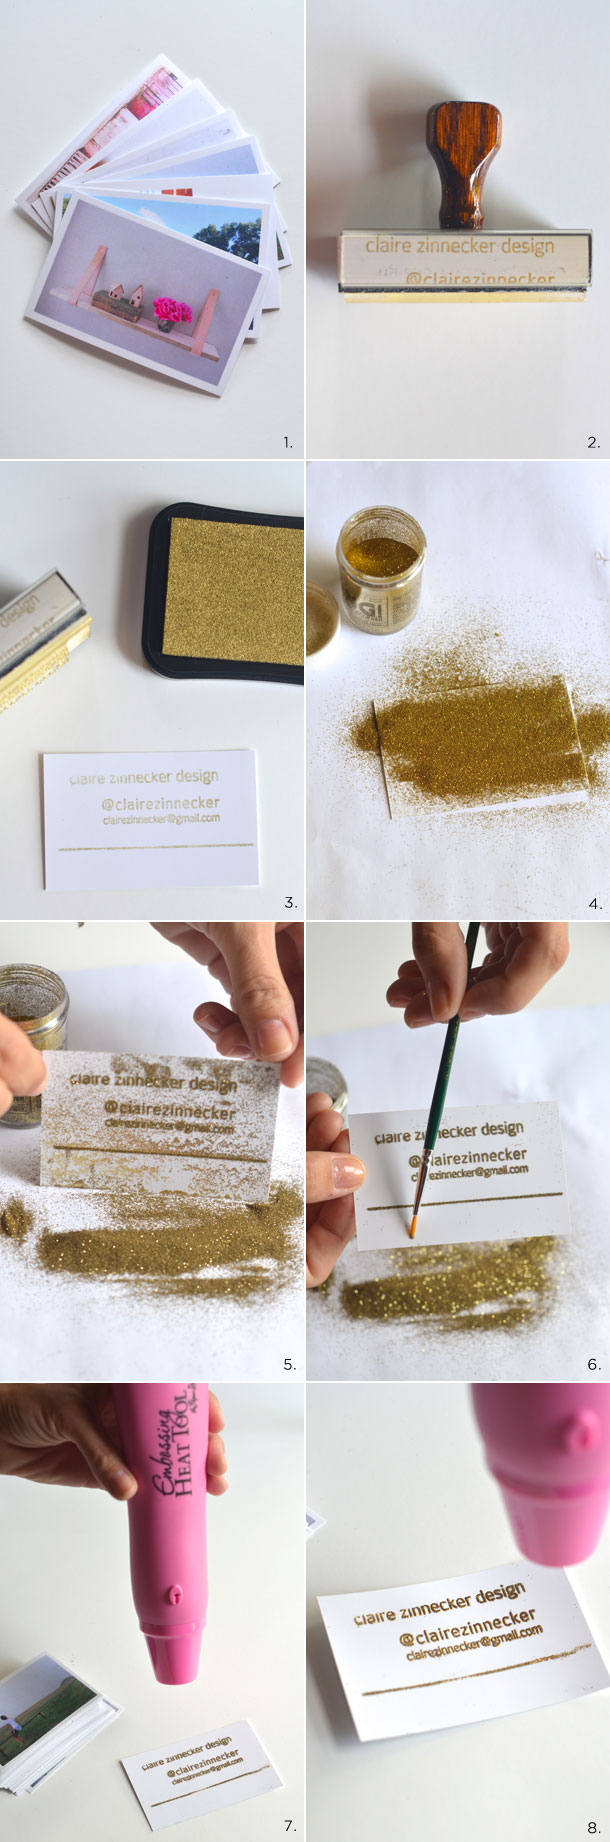 DIY embossed instragram business cards | claire zinnecker for camille styles